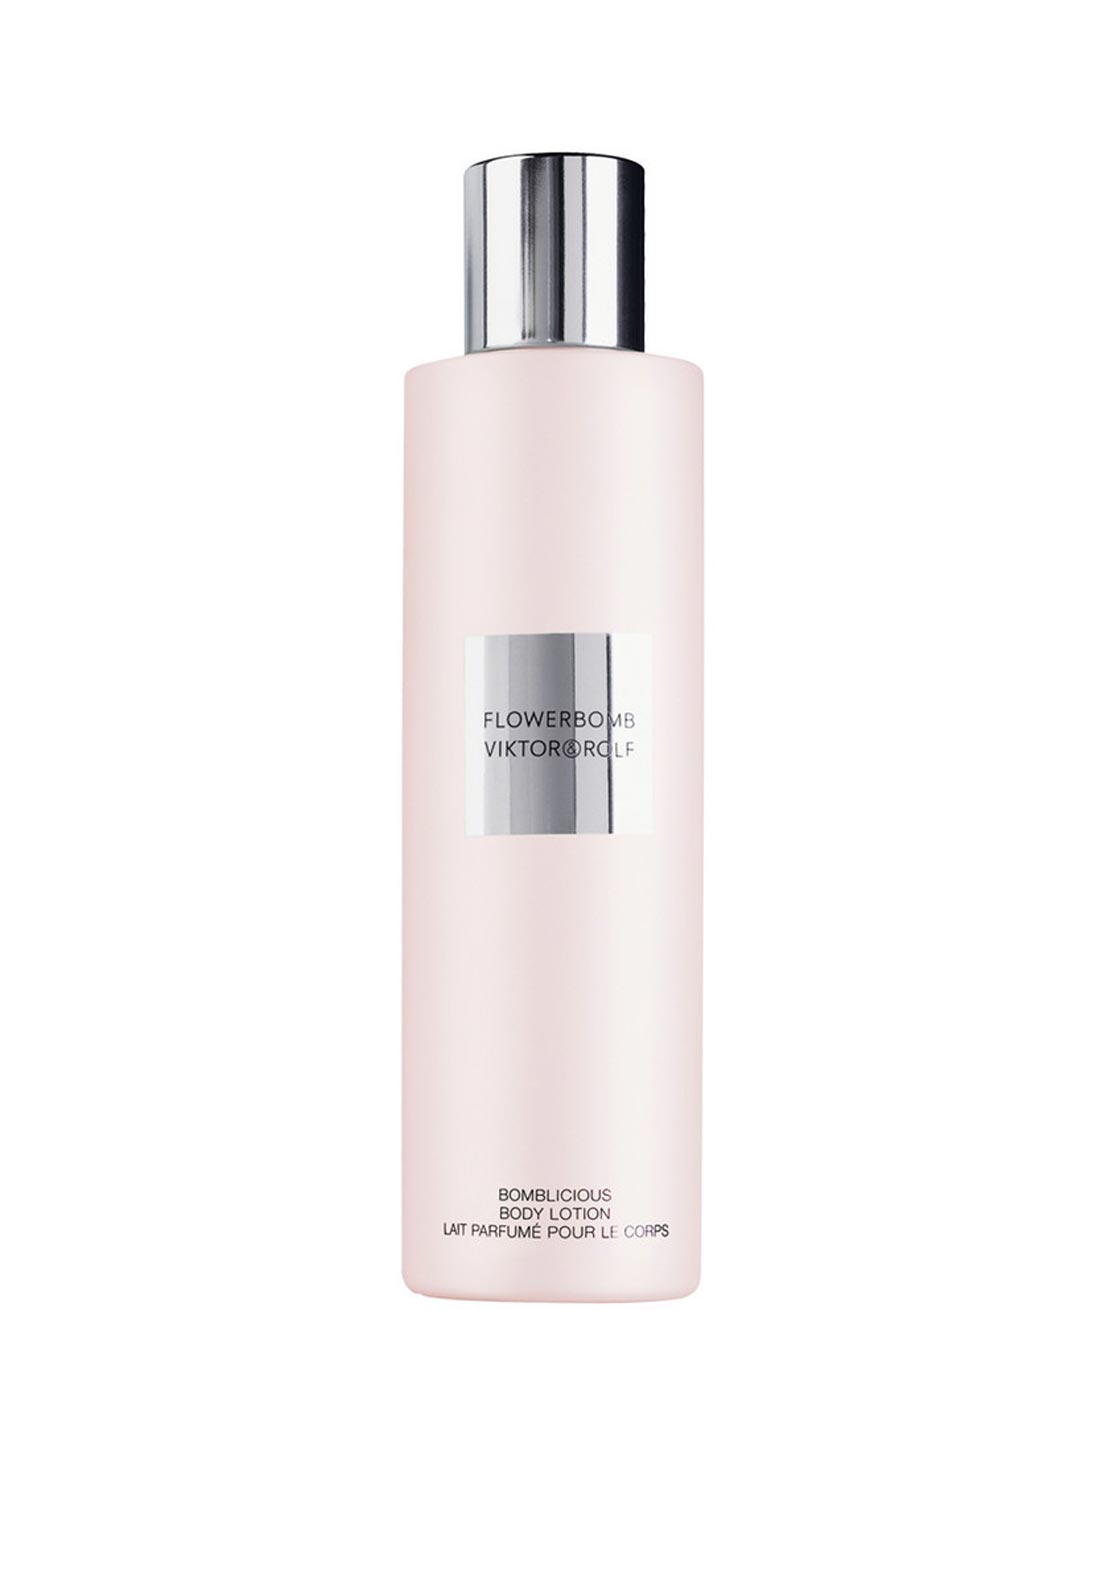 Viktor & Rolf Flowerbomb Perfumed Body Lotion, 200ml